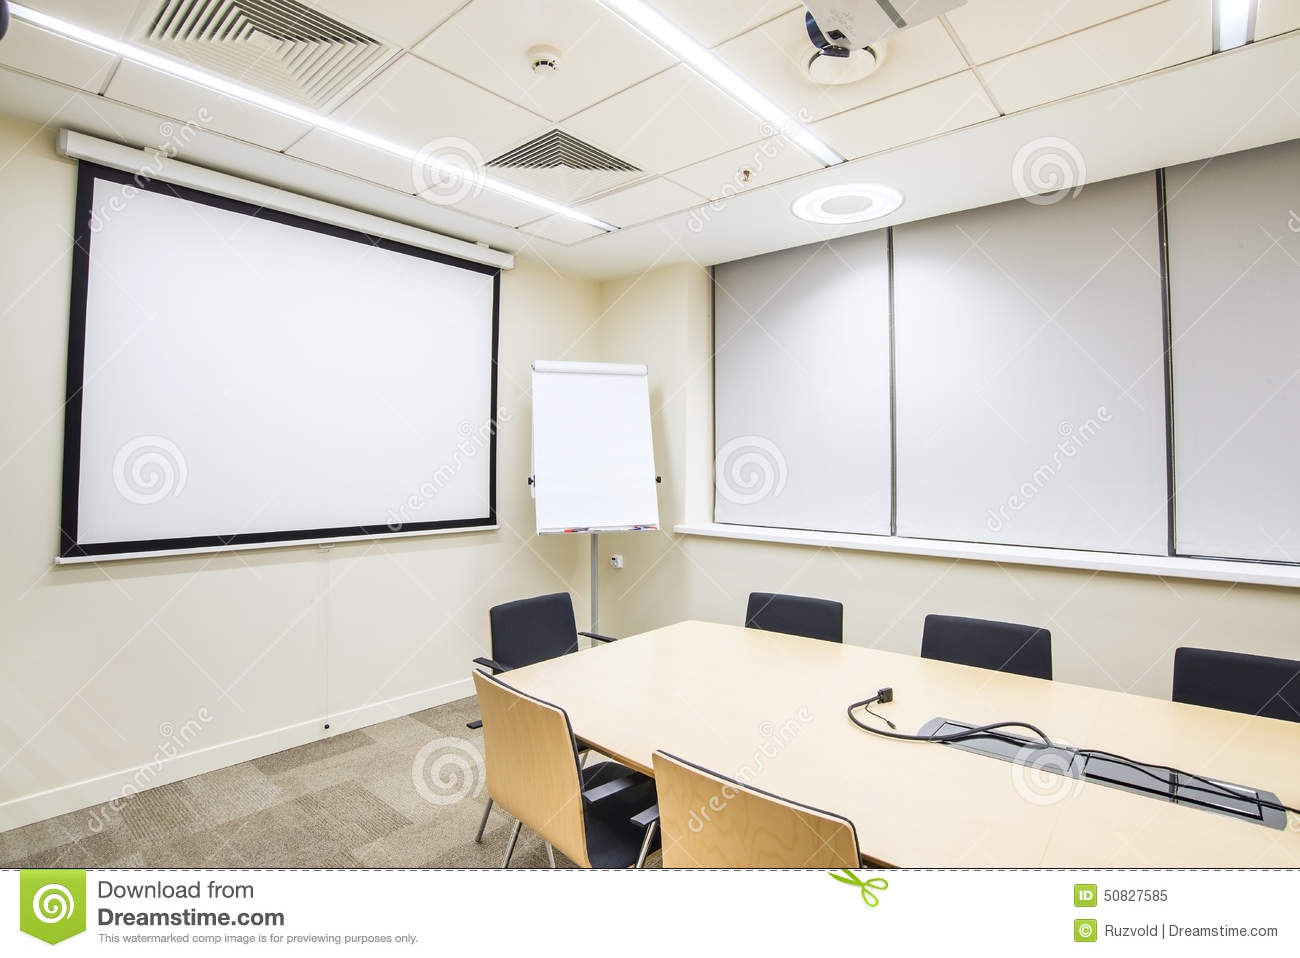 Modern Classroom Certified Trainer ~ Small meeting or training room with tv projector stock